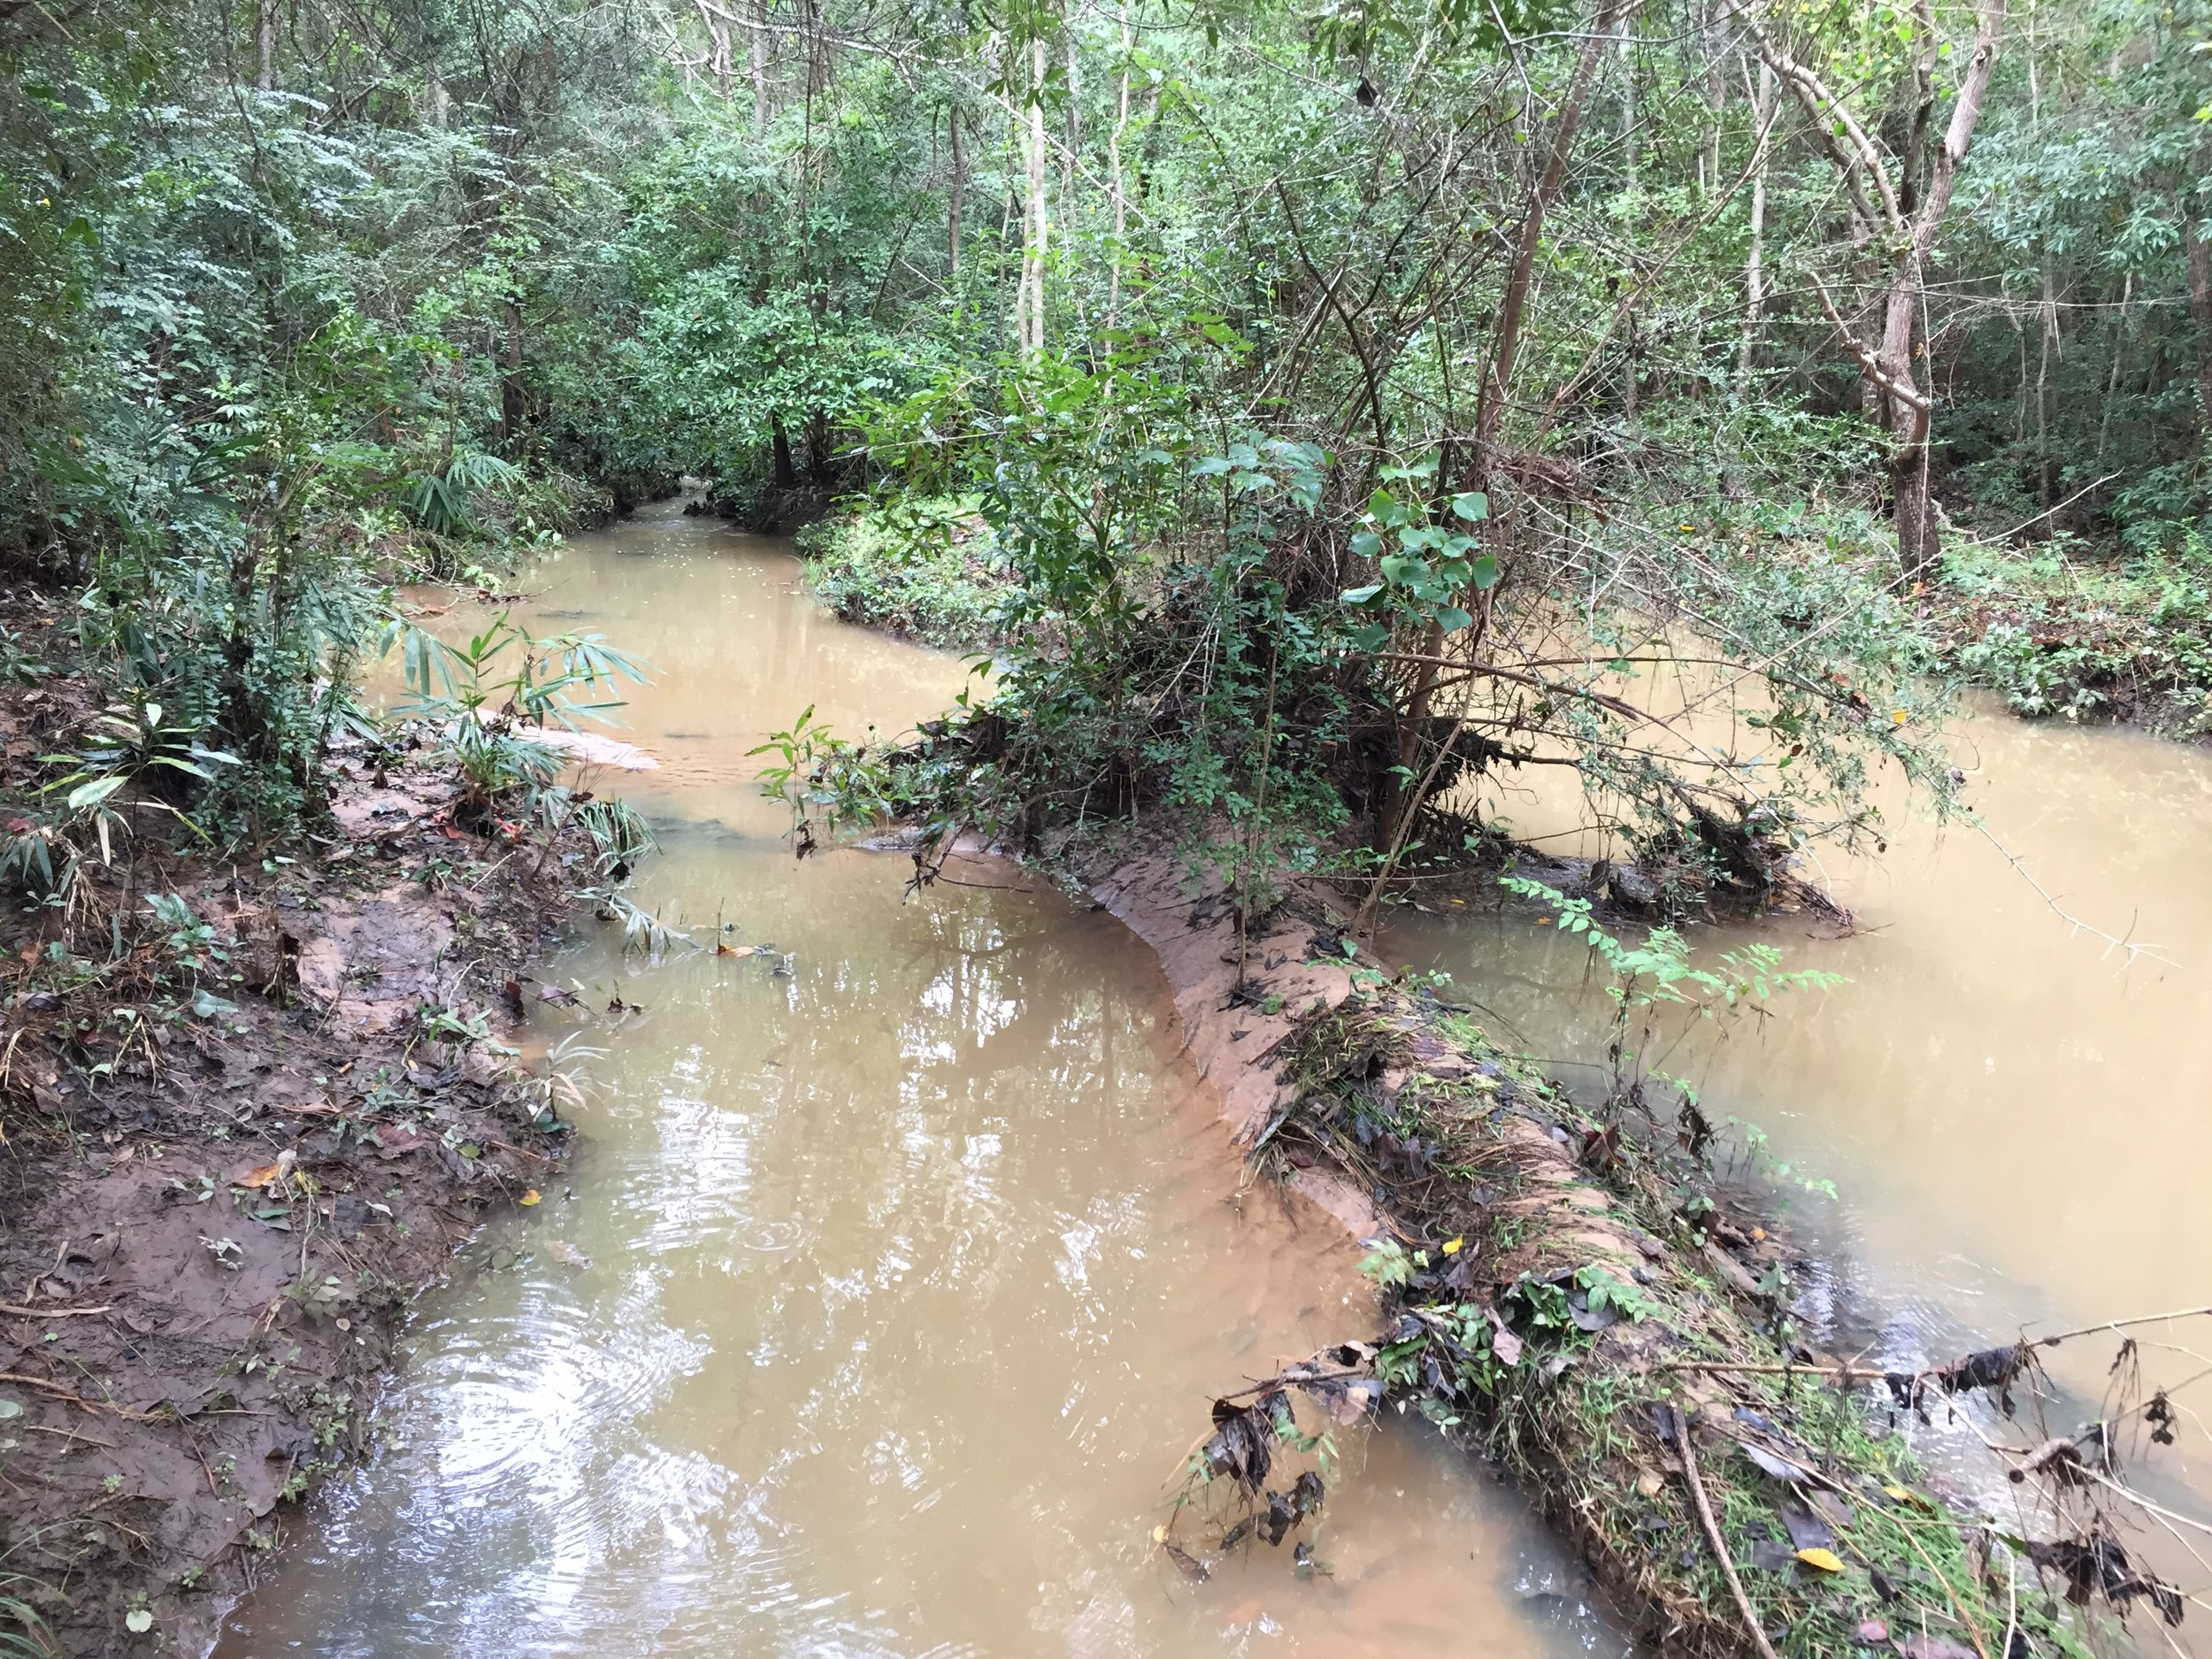 The headwaters of D'Olive Creek run brown with mud downstream of a poorly maintained construction site.